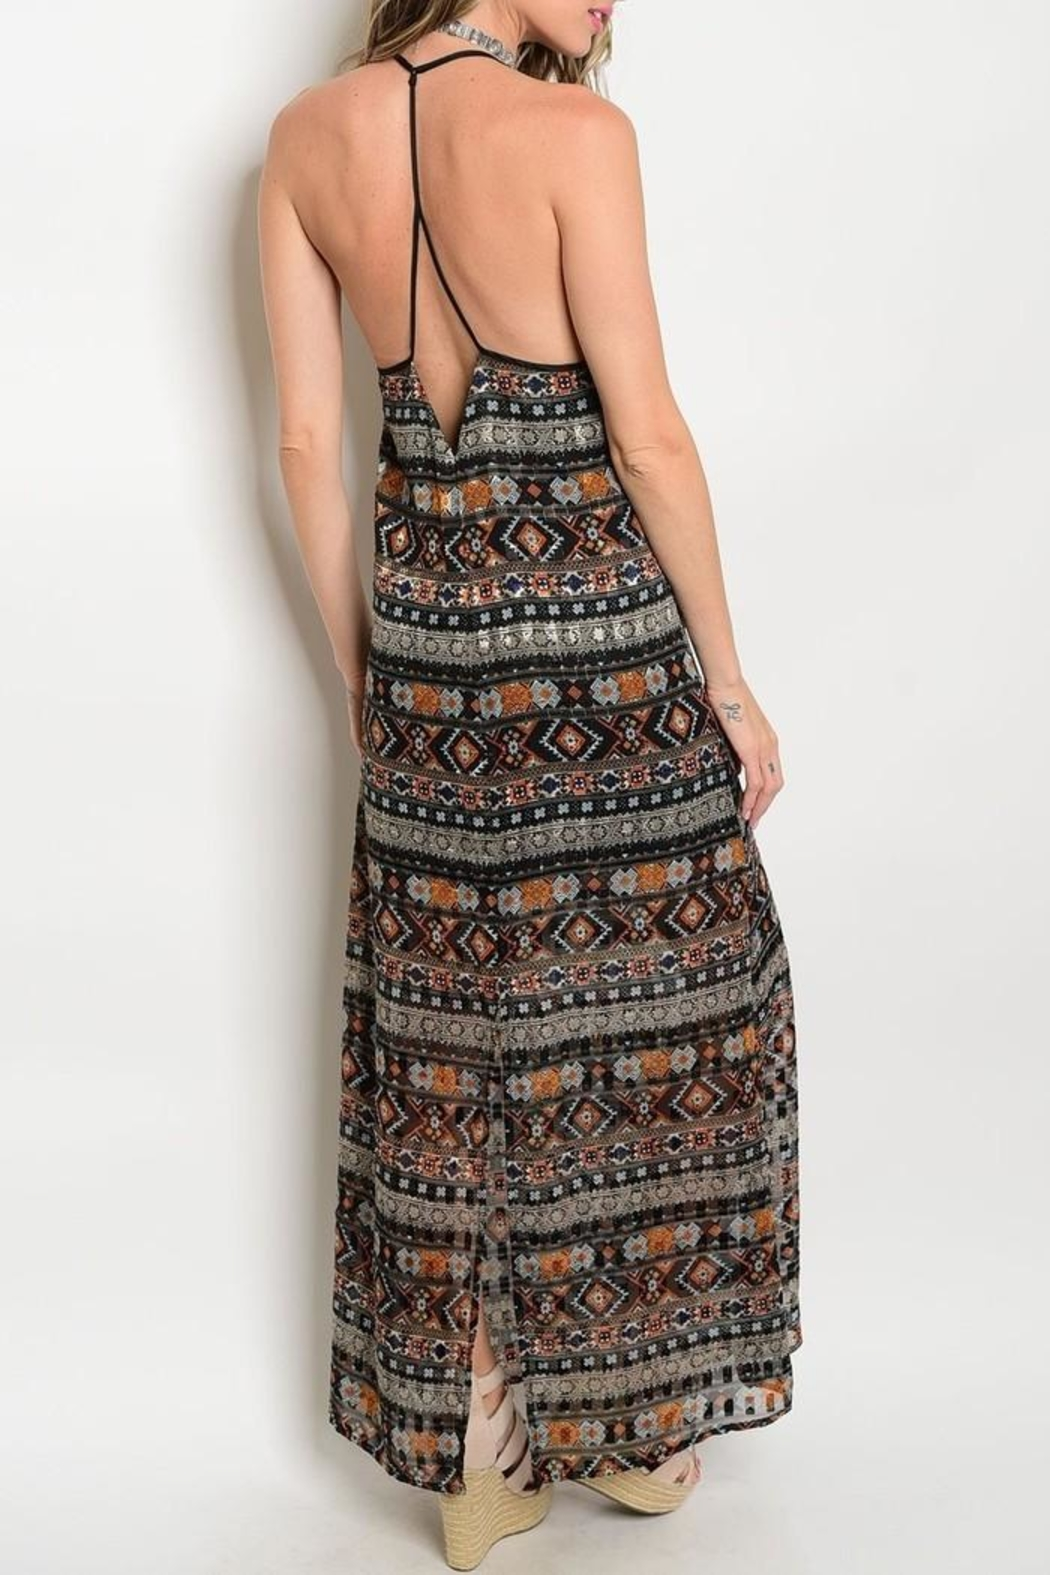 Renamed Clothing Tribal Maxi Dress - Front Full Image